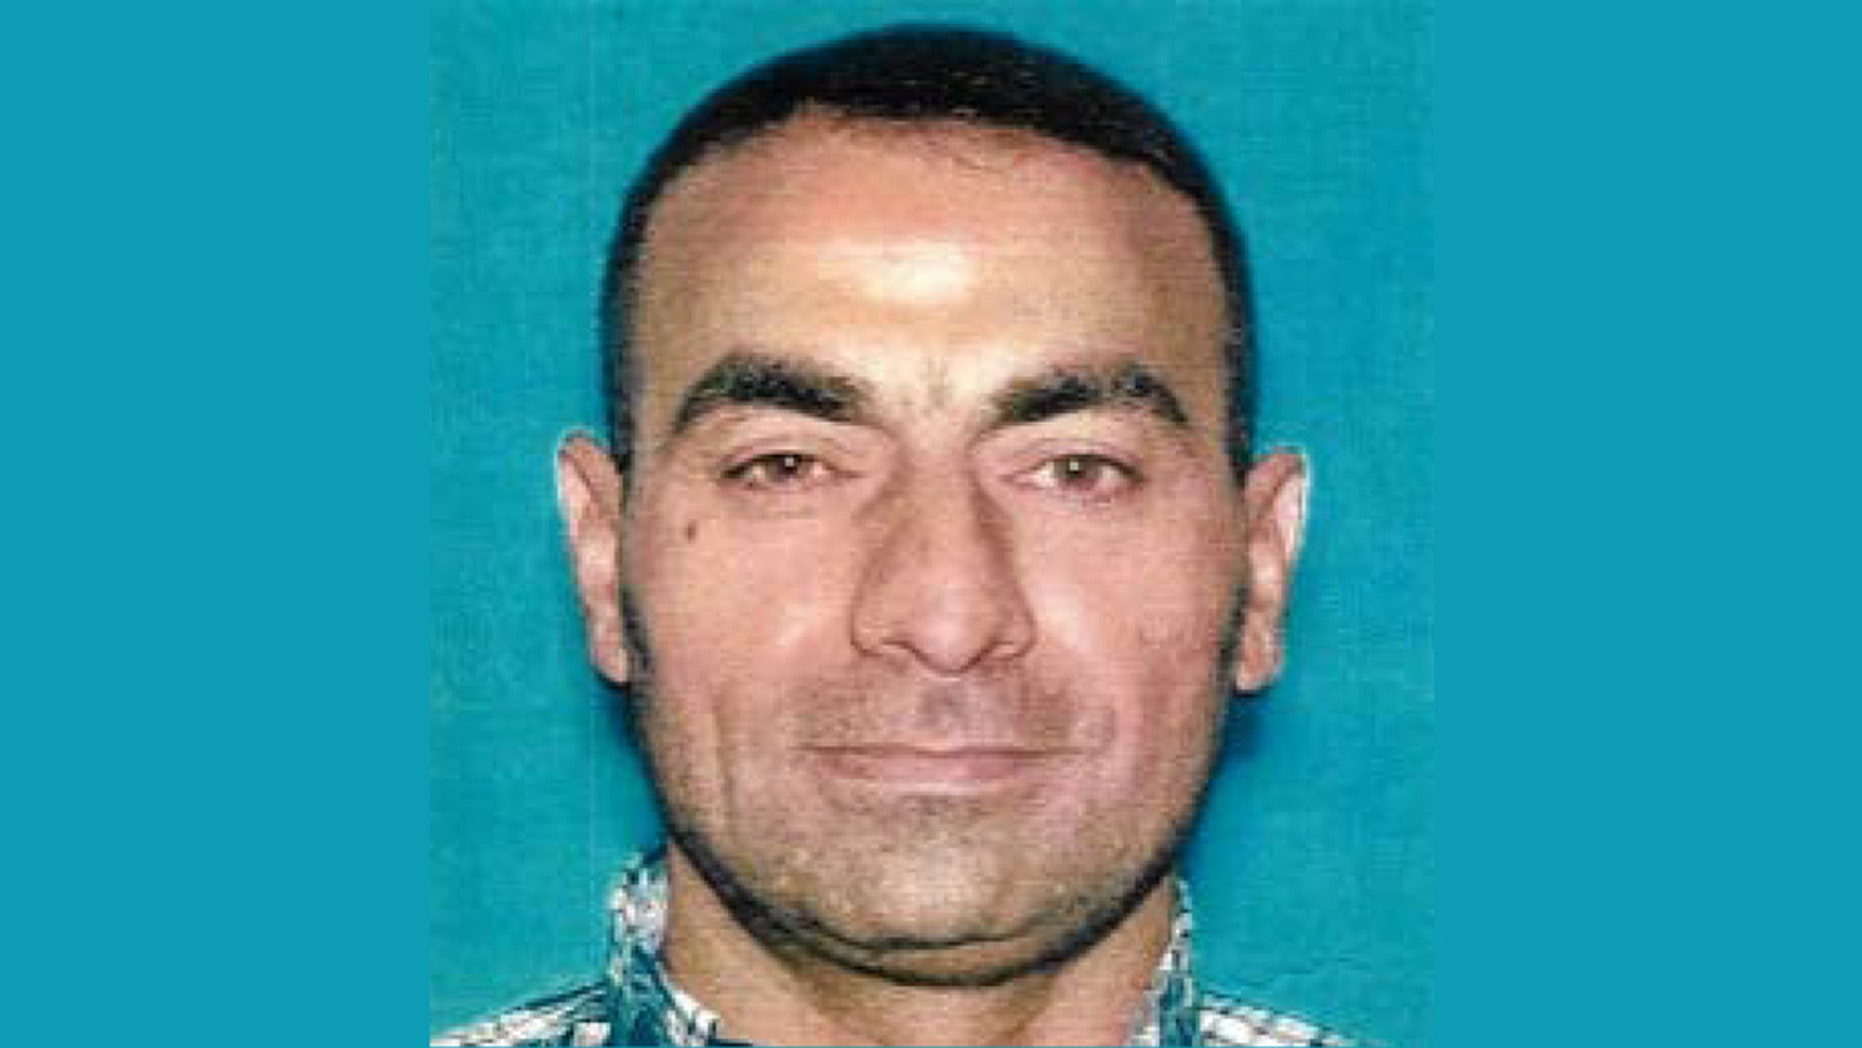 An alleged member of ISIS was apprehended in northern California on Wednesday after being accused in the 2014 murder of a police officer in Iraq, officials announced.